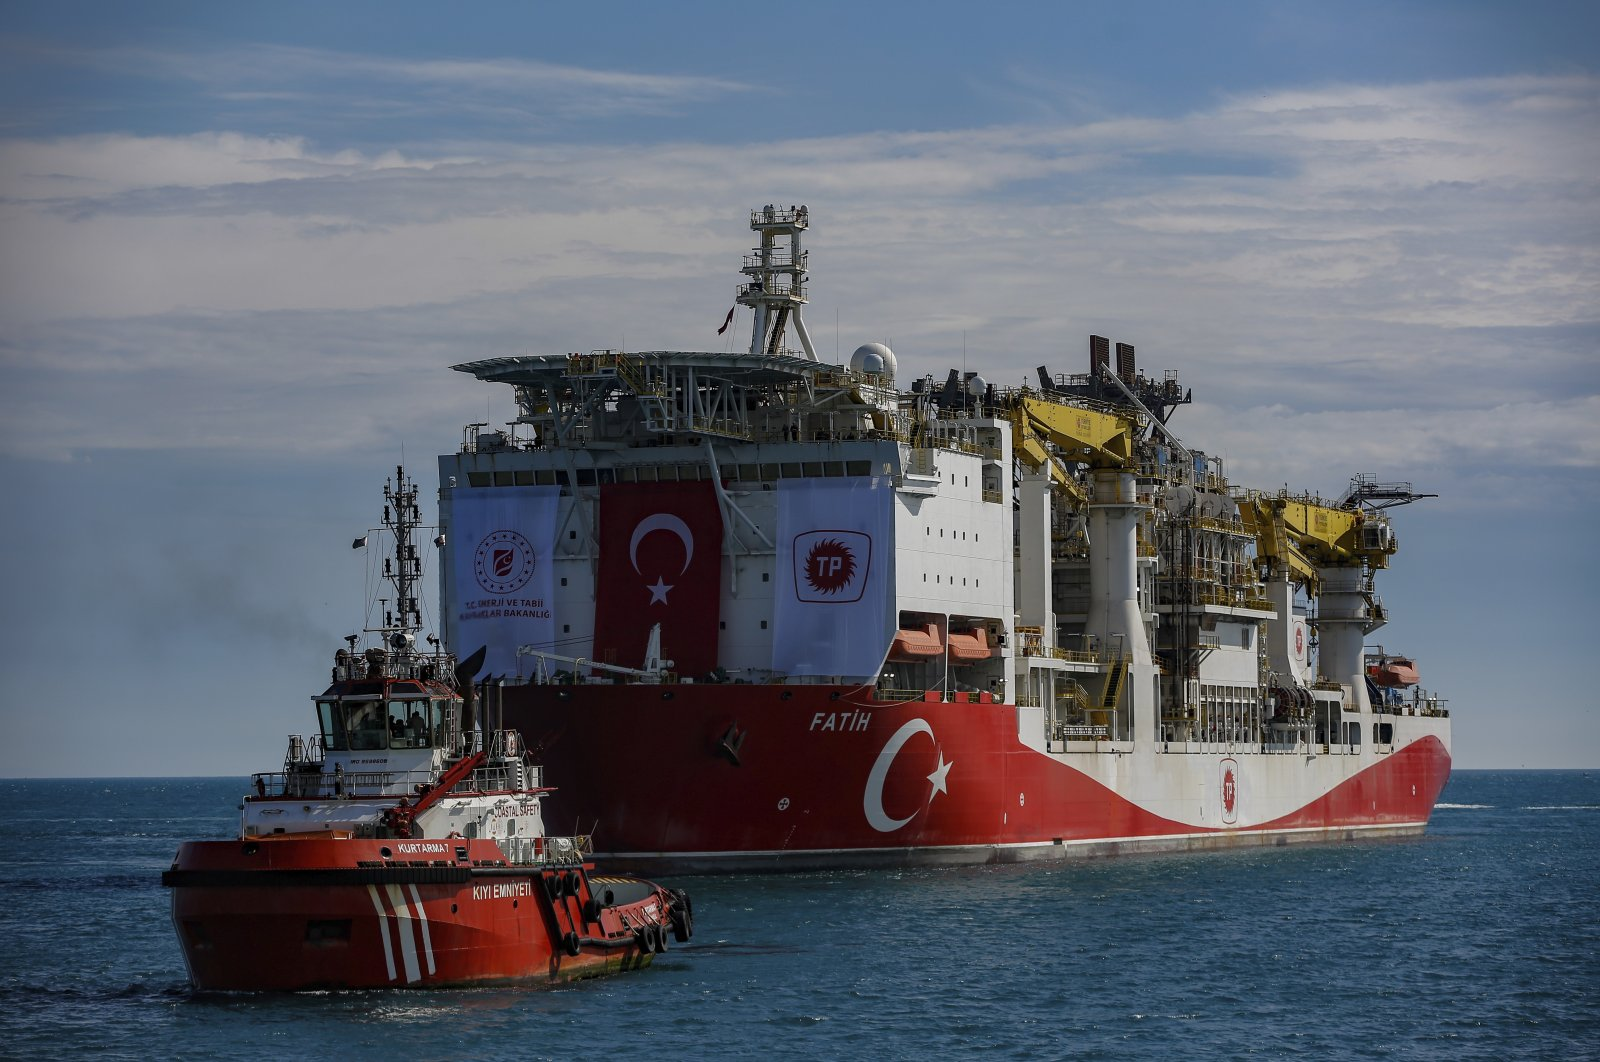 Turkey's drillship, Fatih, sails through the Bosporus toward the Black Sea, in Istanbul, Turkey, May 29, 2020. (AP Photo)